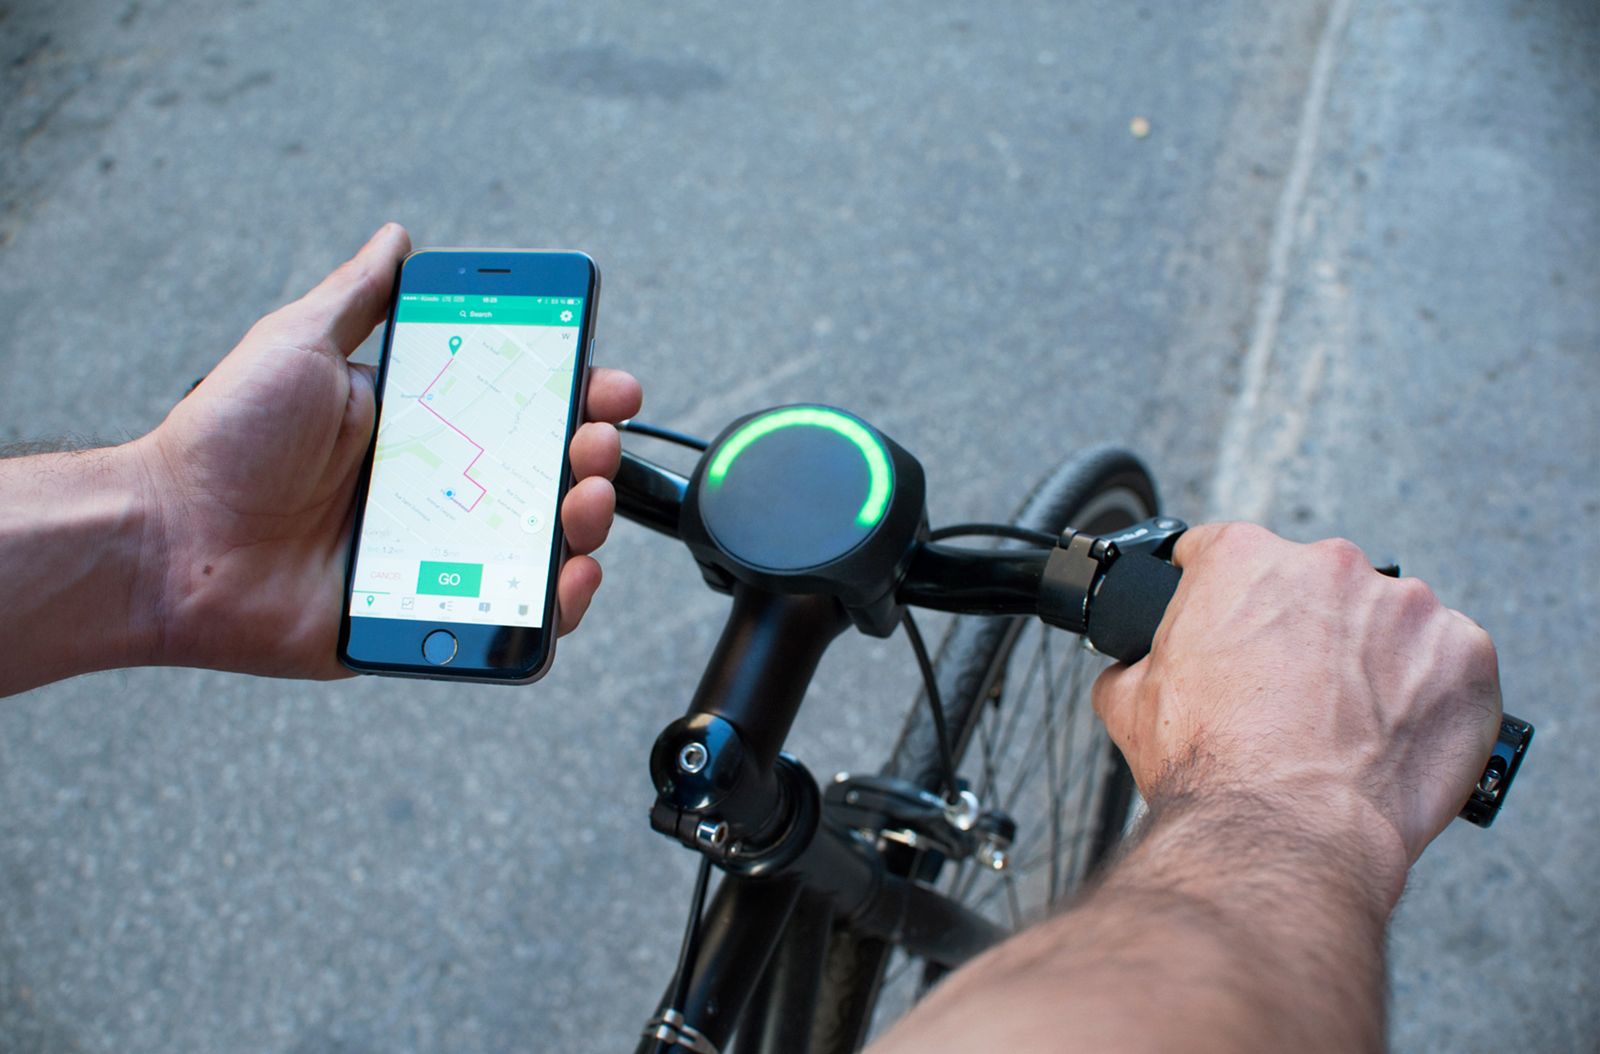 Bicycle Smart Navigation Device